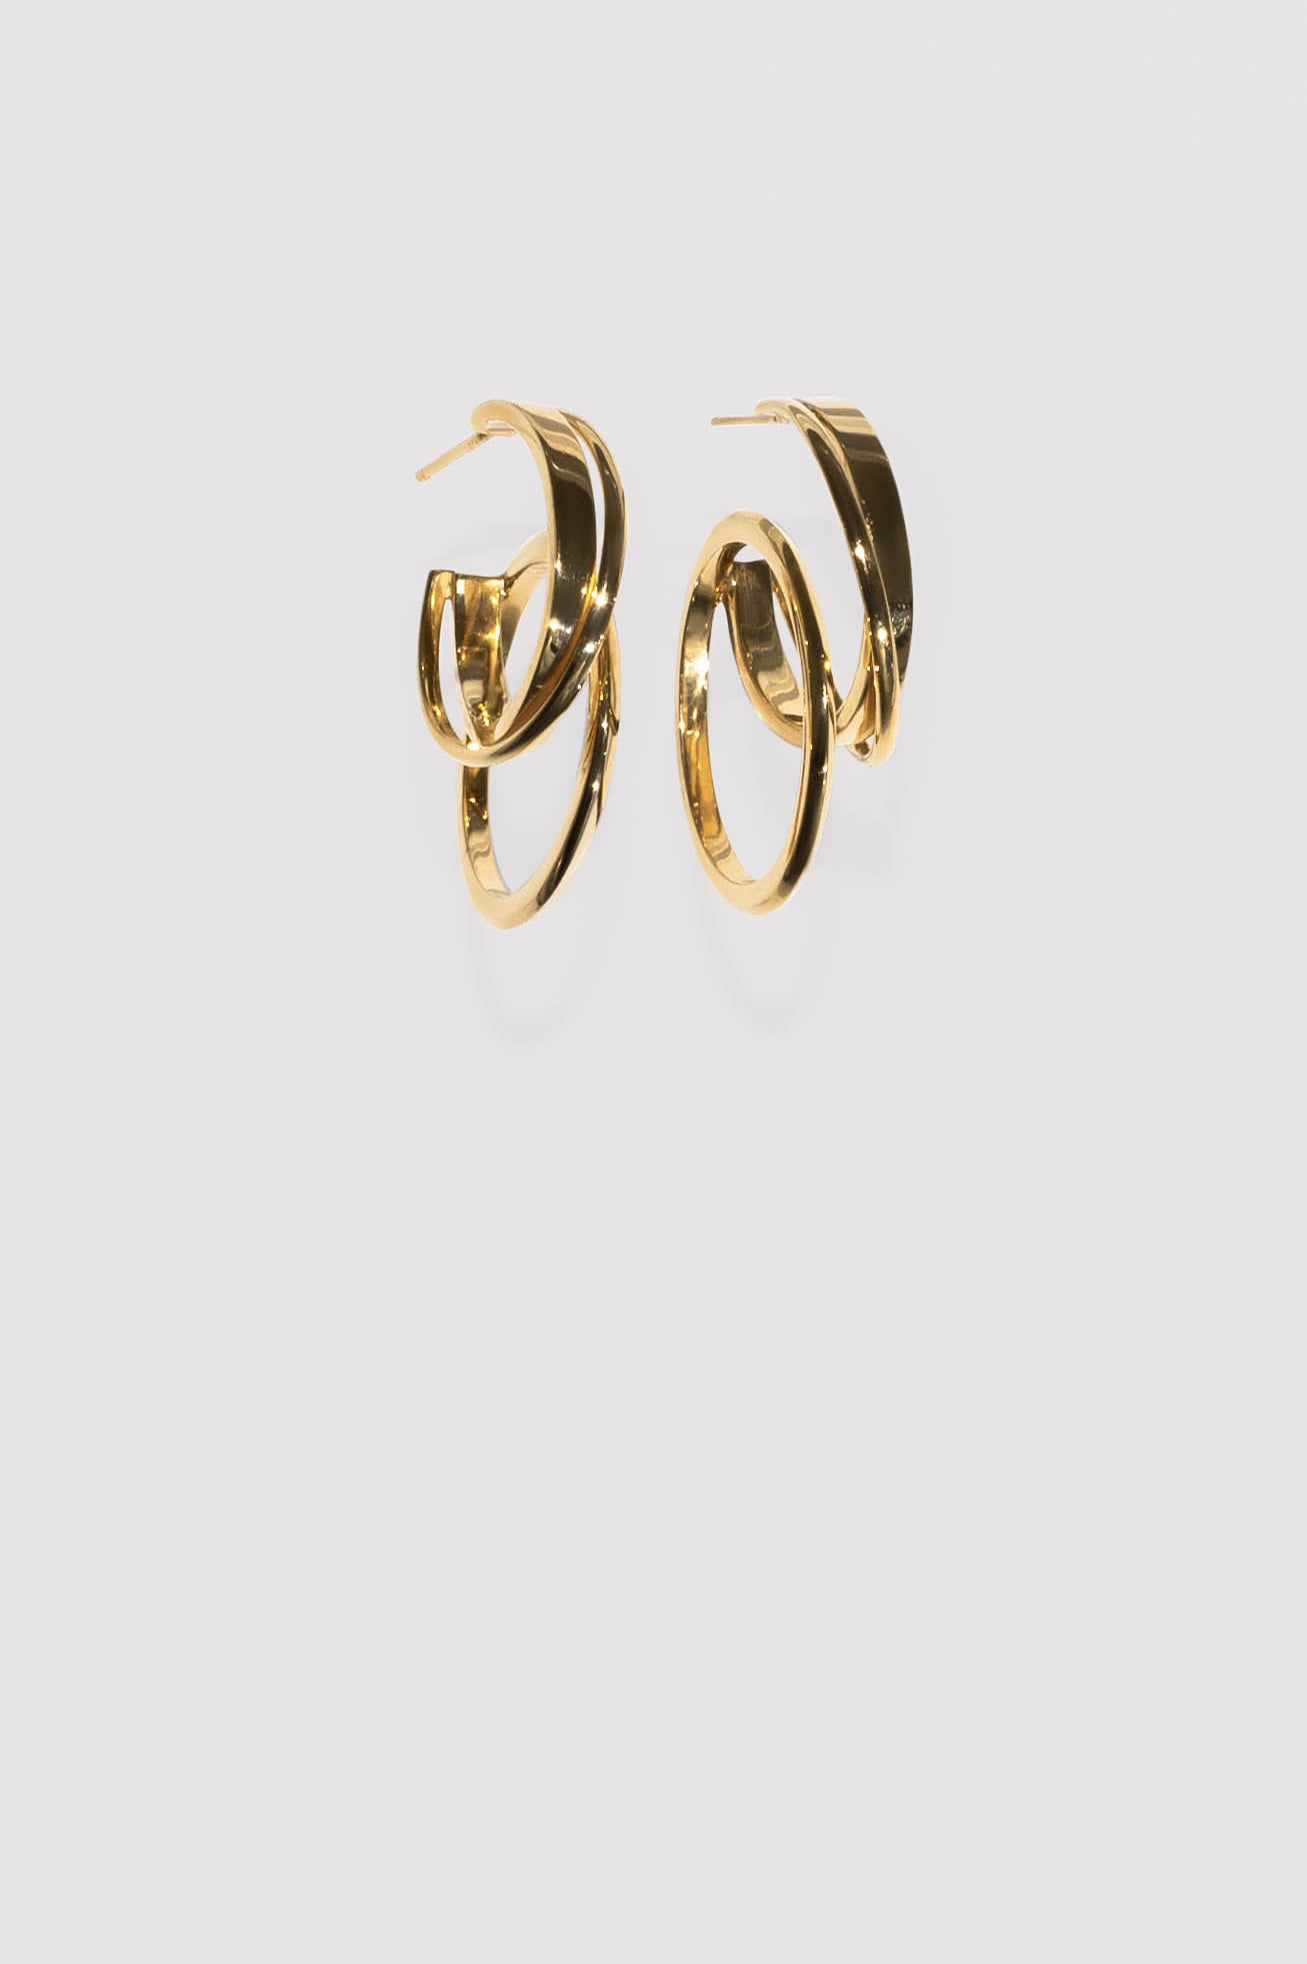 10Y LVK Earring 02 Gold Plated Silver